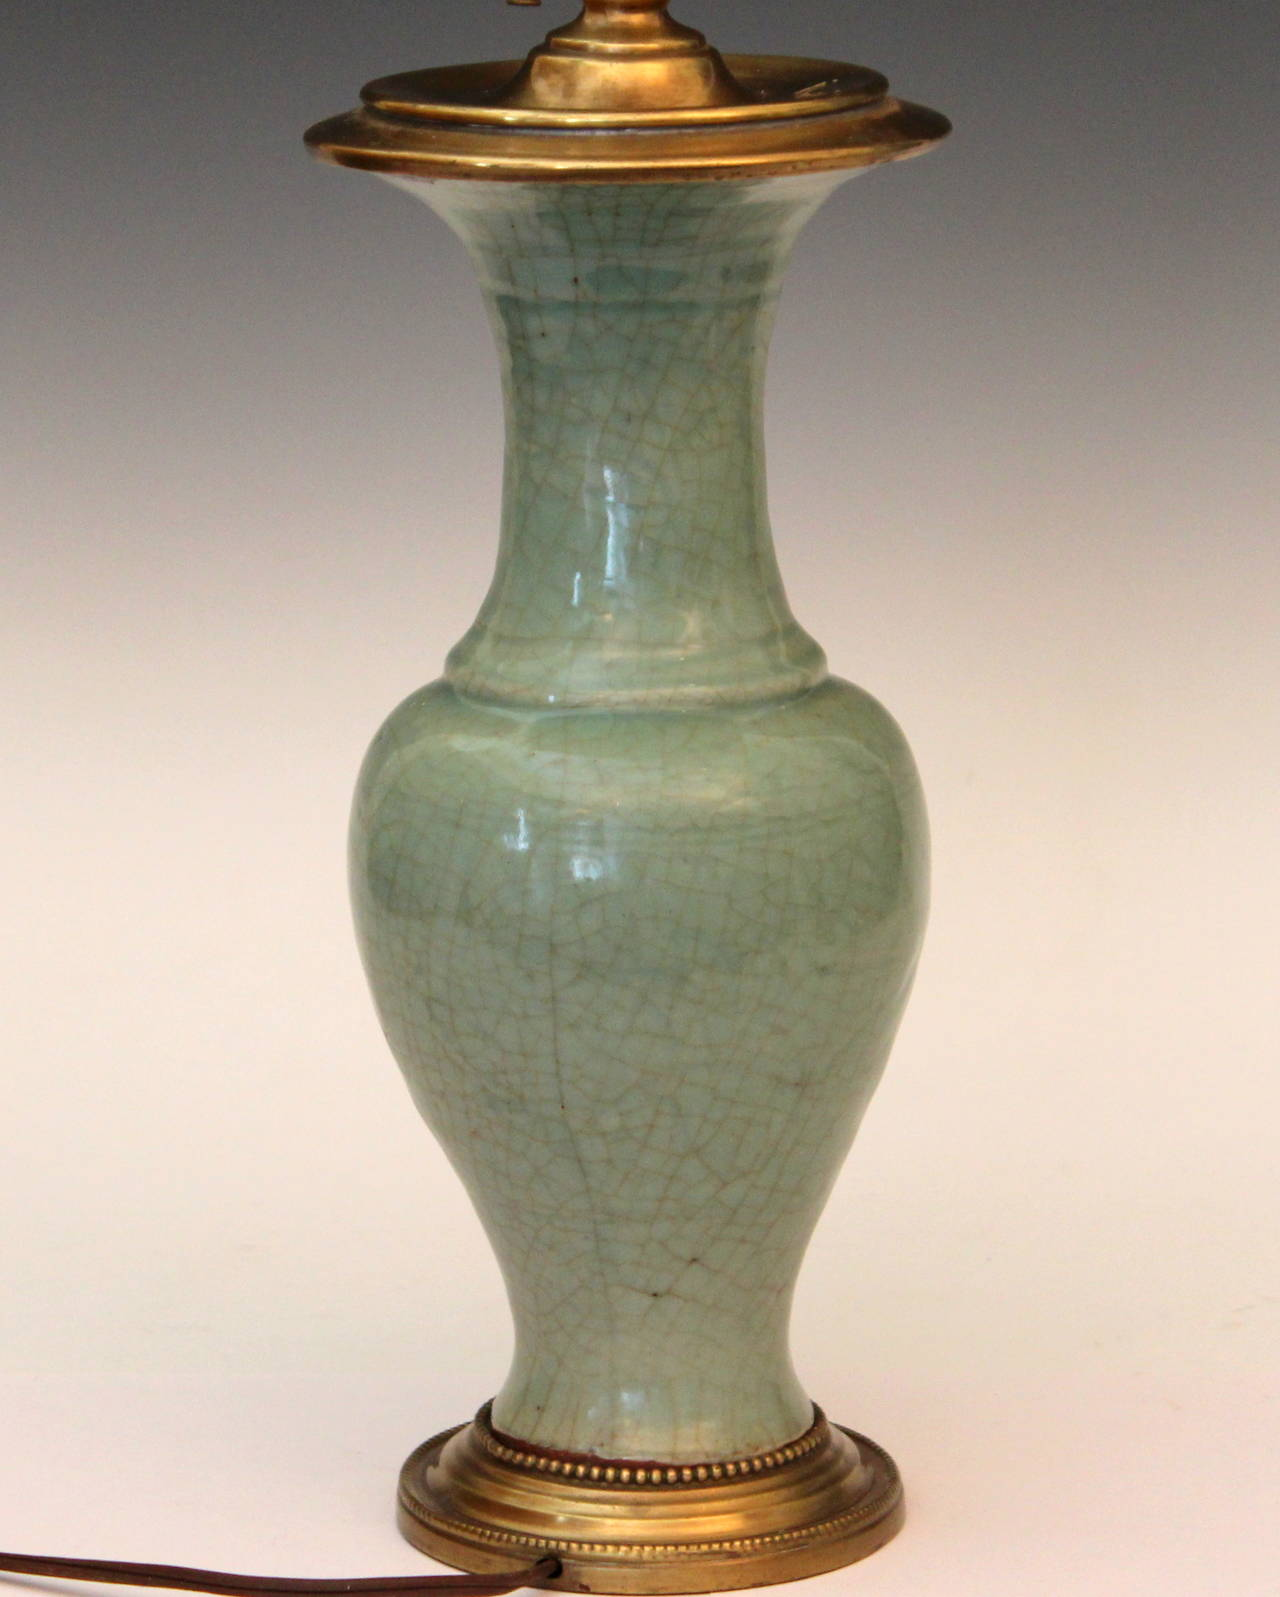 Antique Chinese Porcelain Celadon Crackle Glaze Vase Lamp